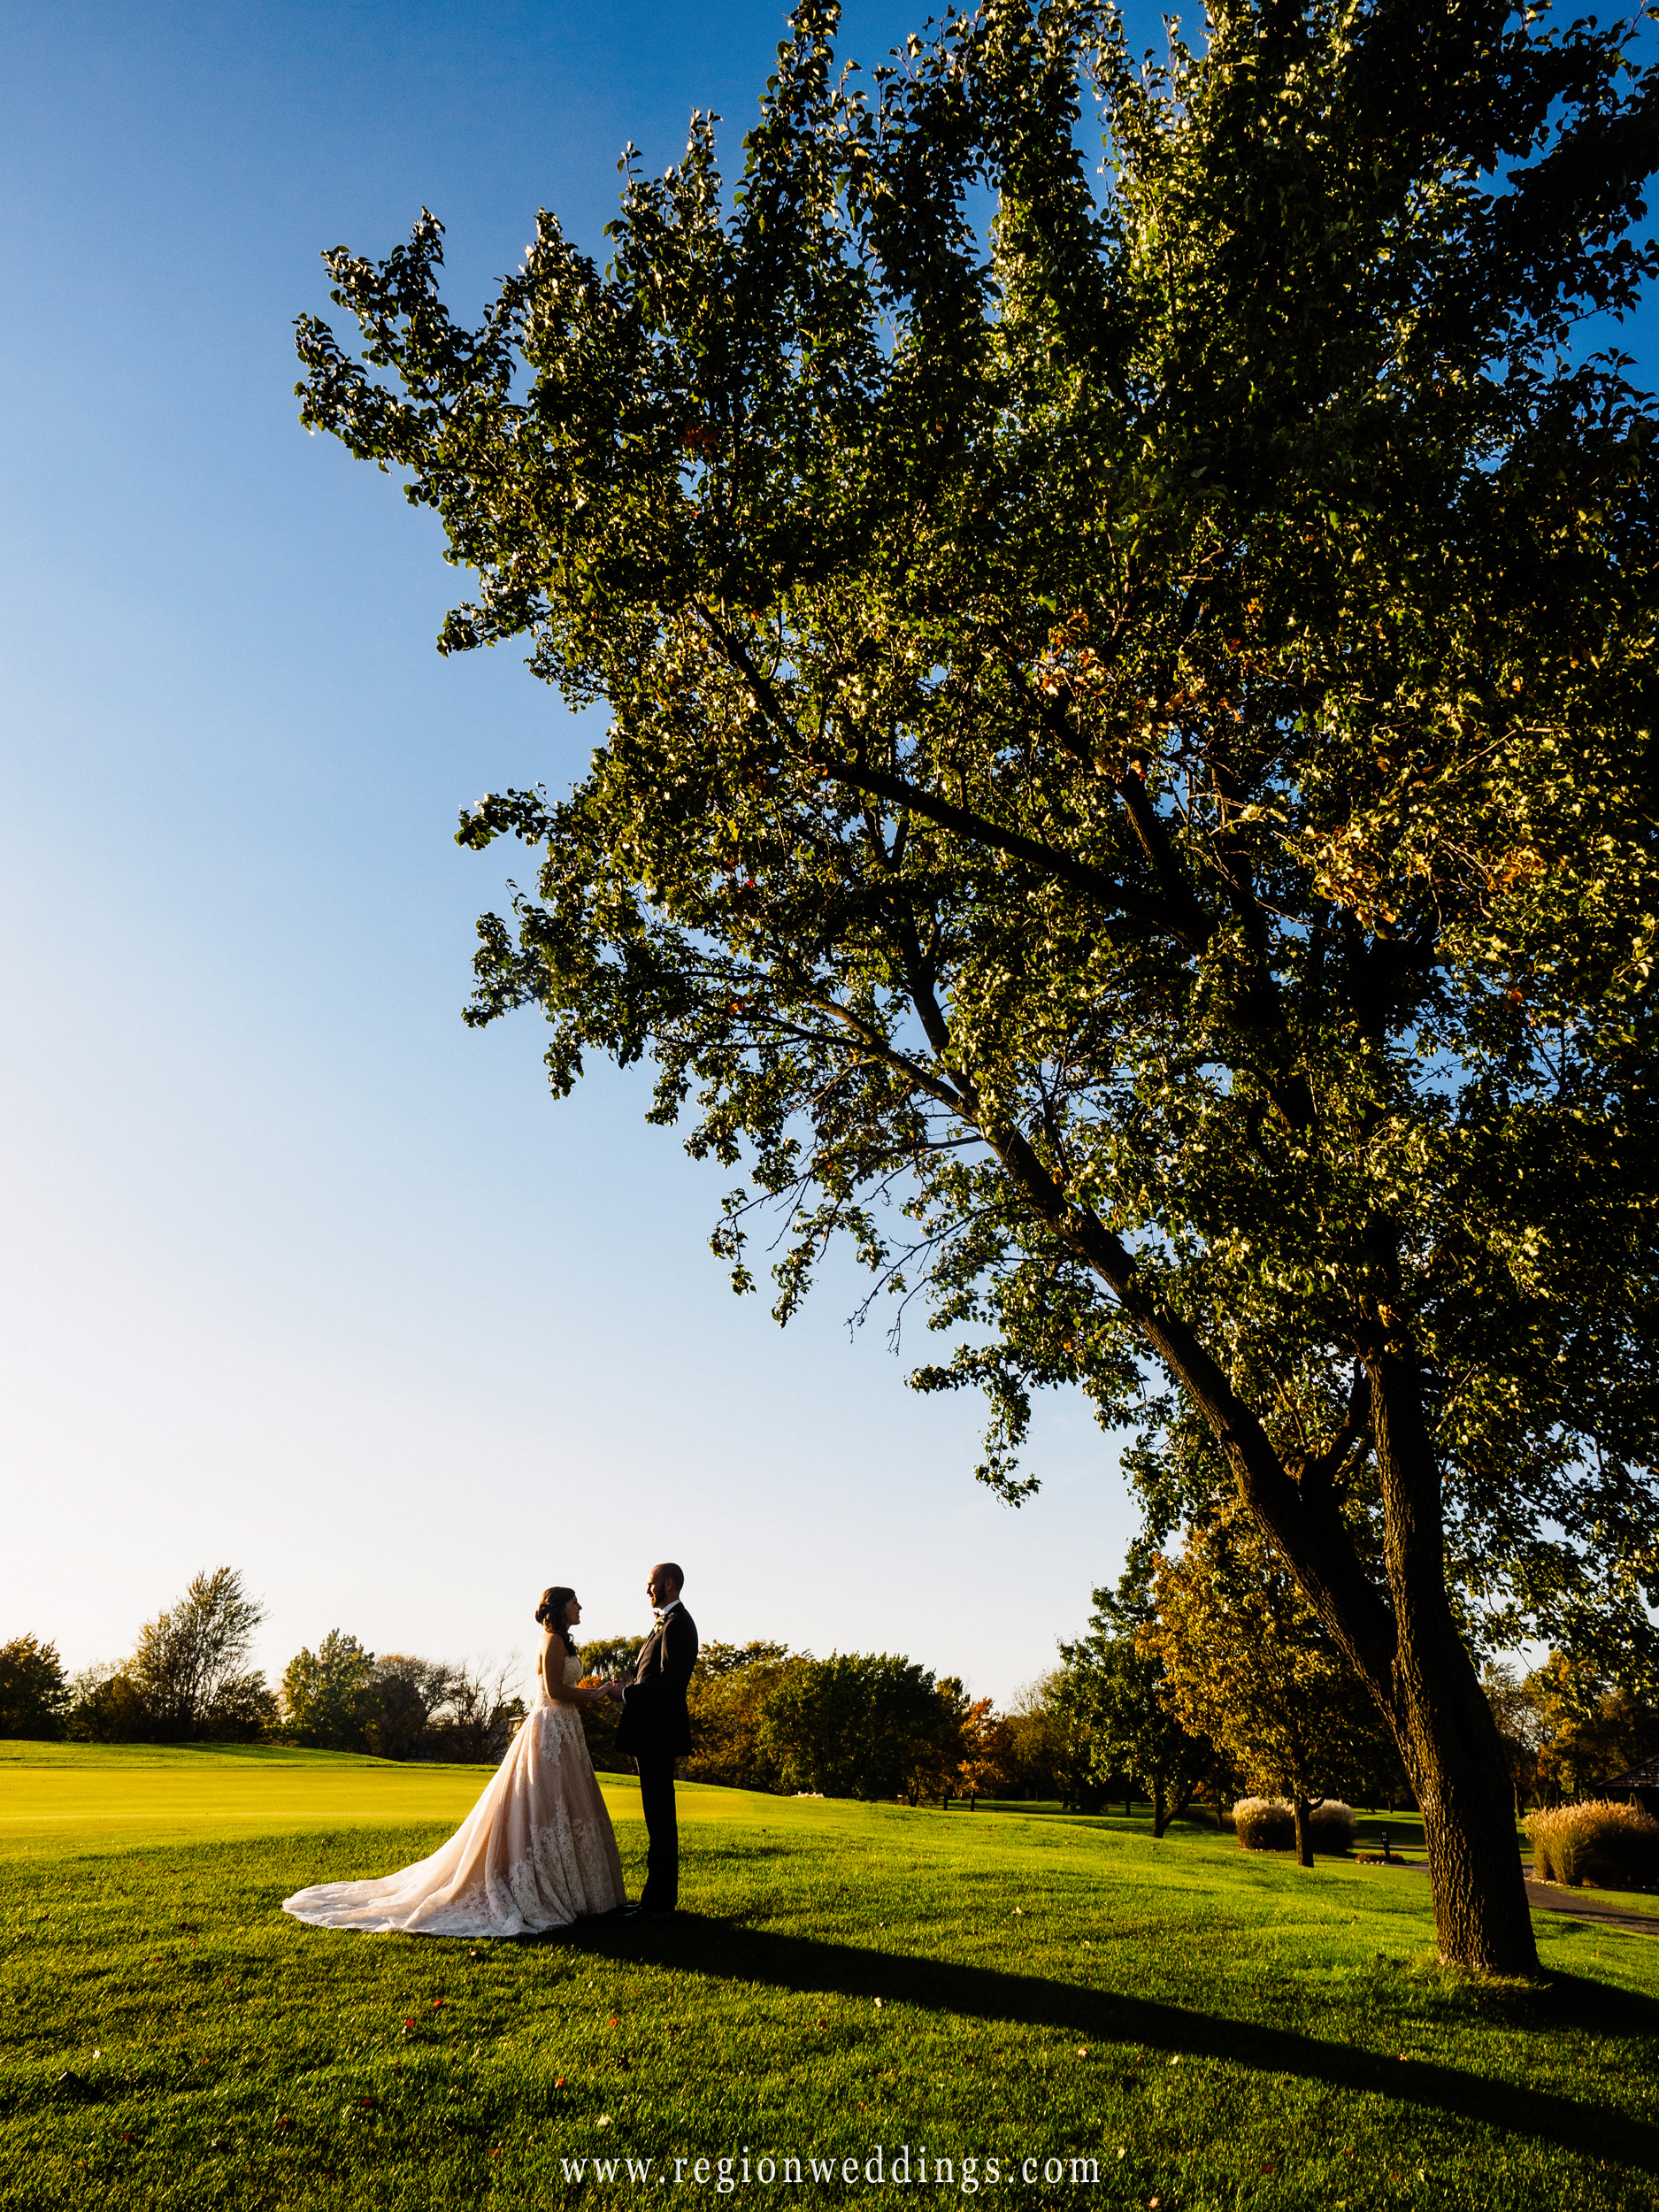 The bride groom hold hands in the shade of a large tree at Briar Ridge Country Club.